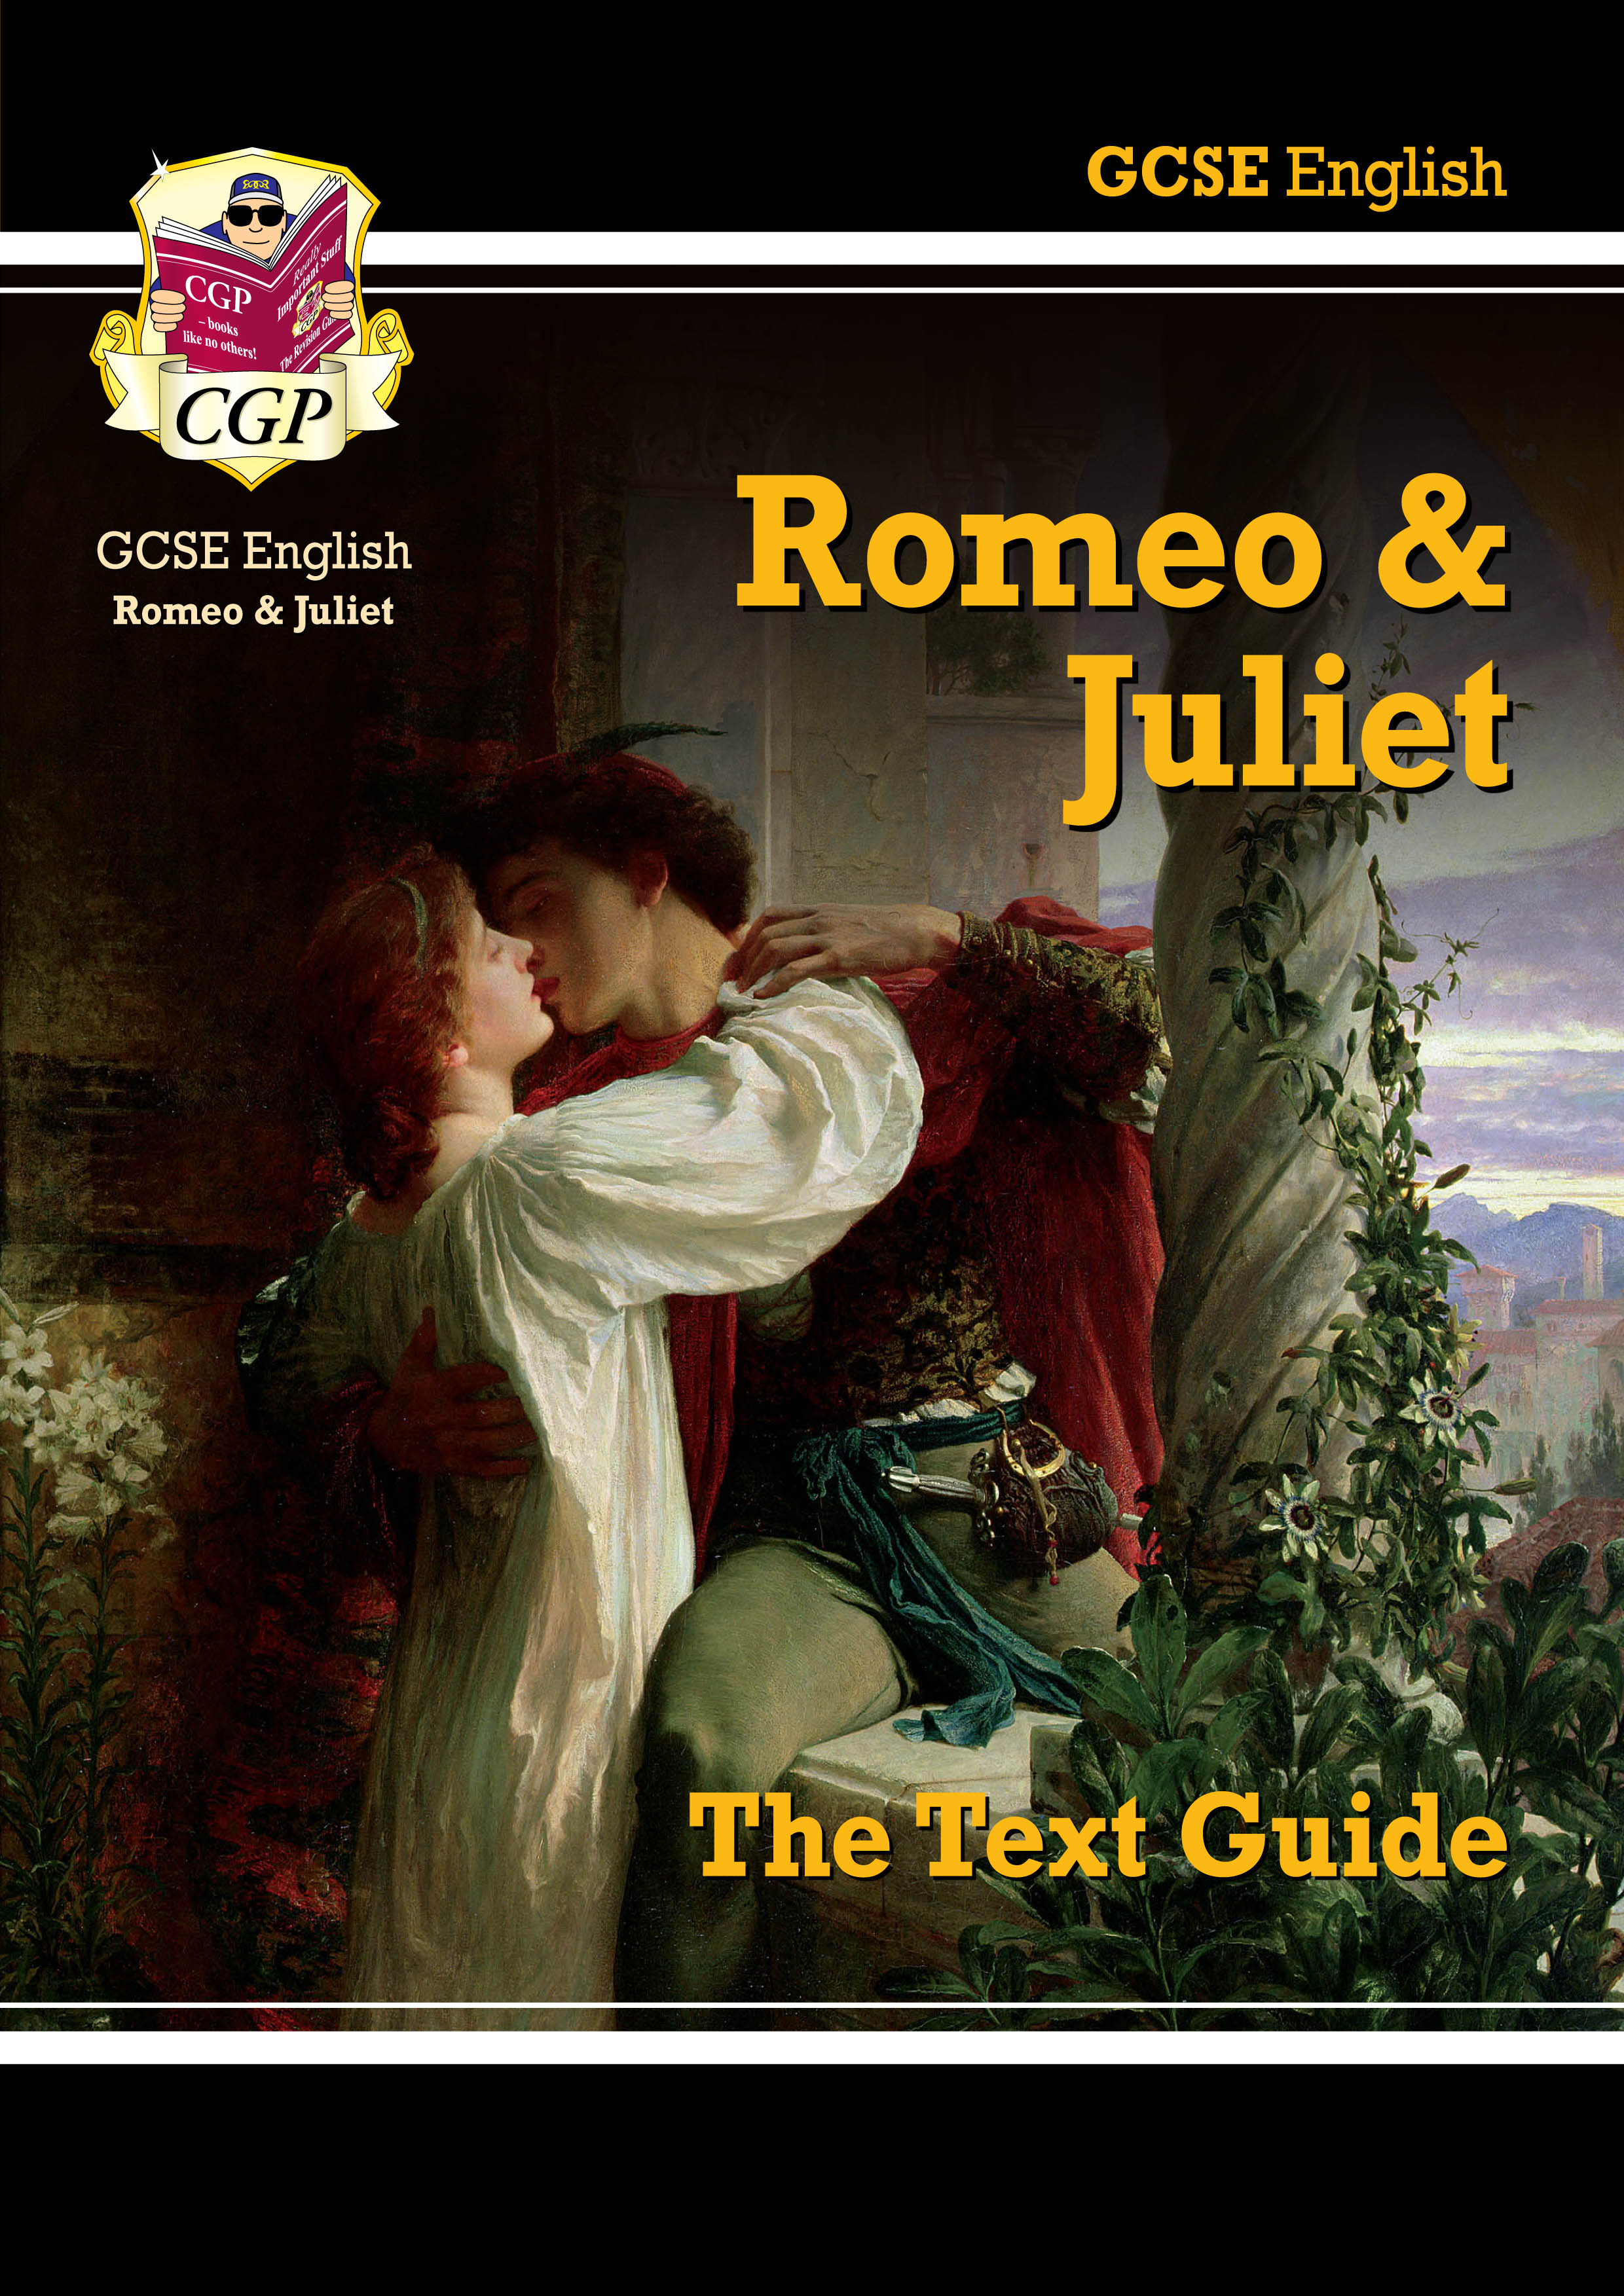 ETR44DK - Grade 9-1 GCSE English Shakespeare Text Guide - Romeo & Juliet